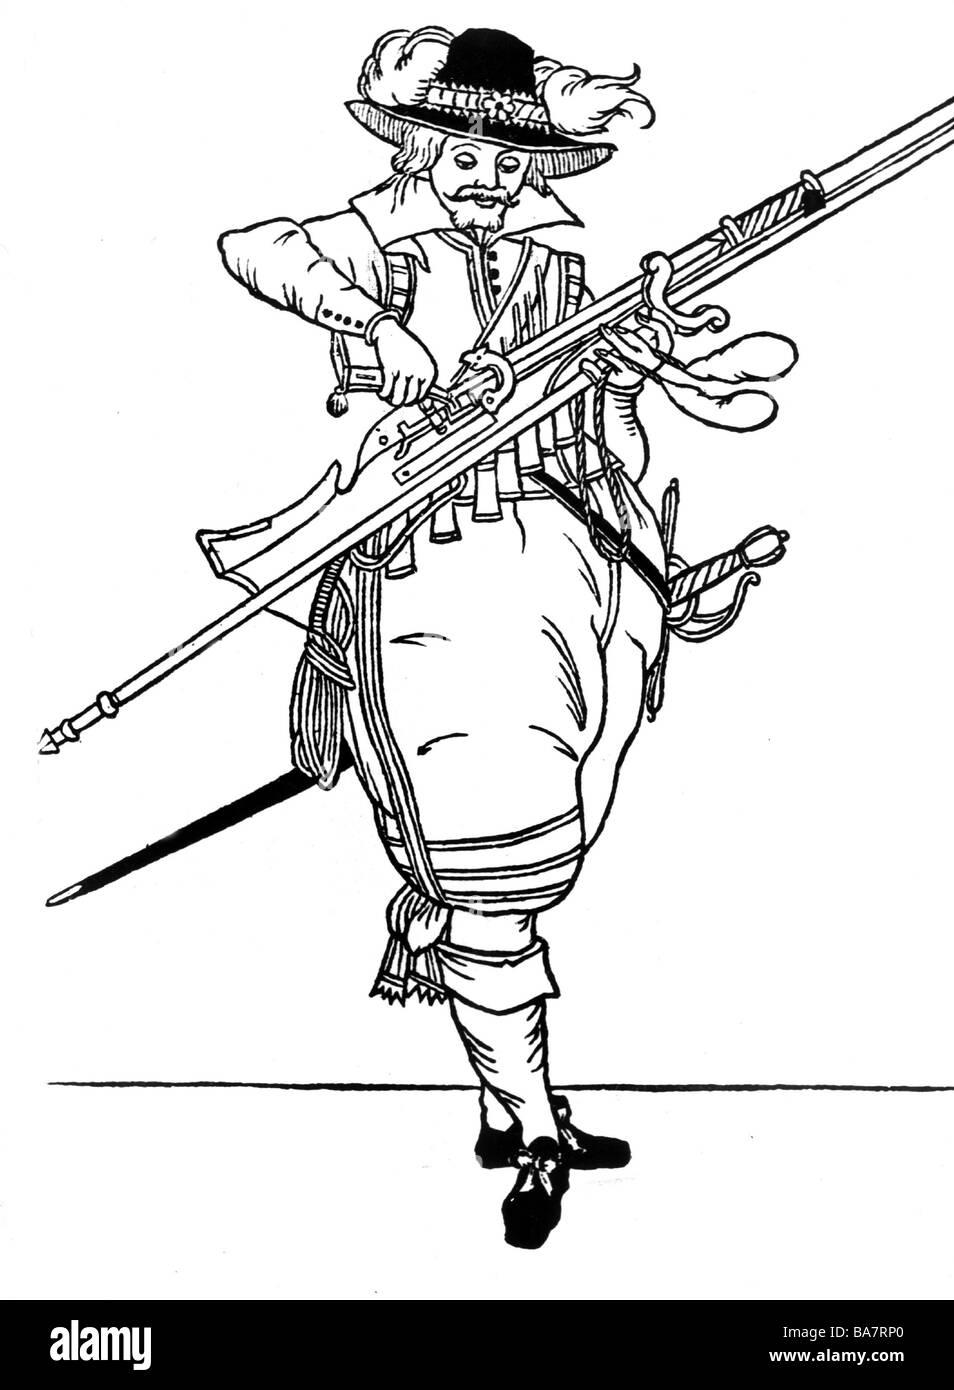 military, infantry, musketeers, musketeer loading musket, woodcut, Frankfurt am Main, 1609, Additional-Rights-Clearances - Stock Image